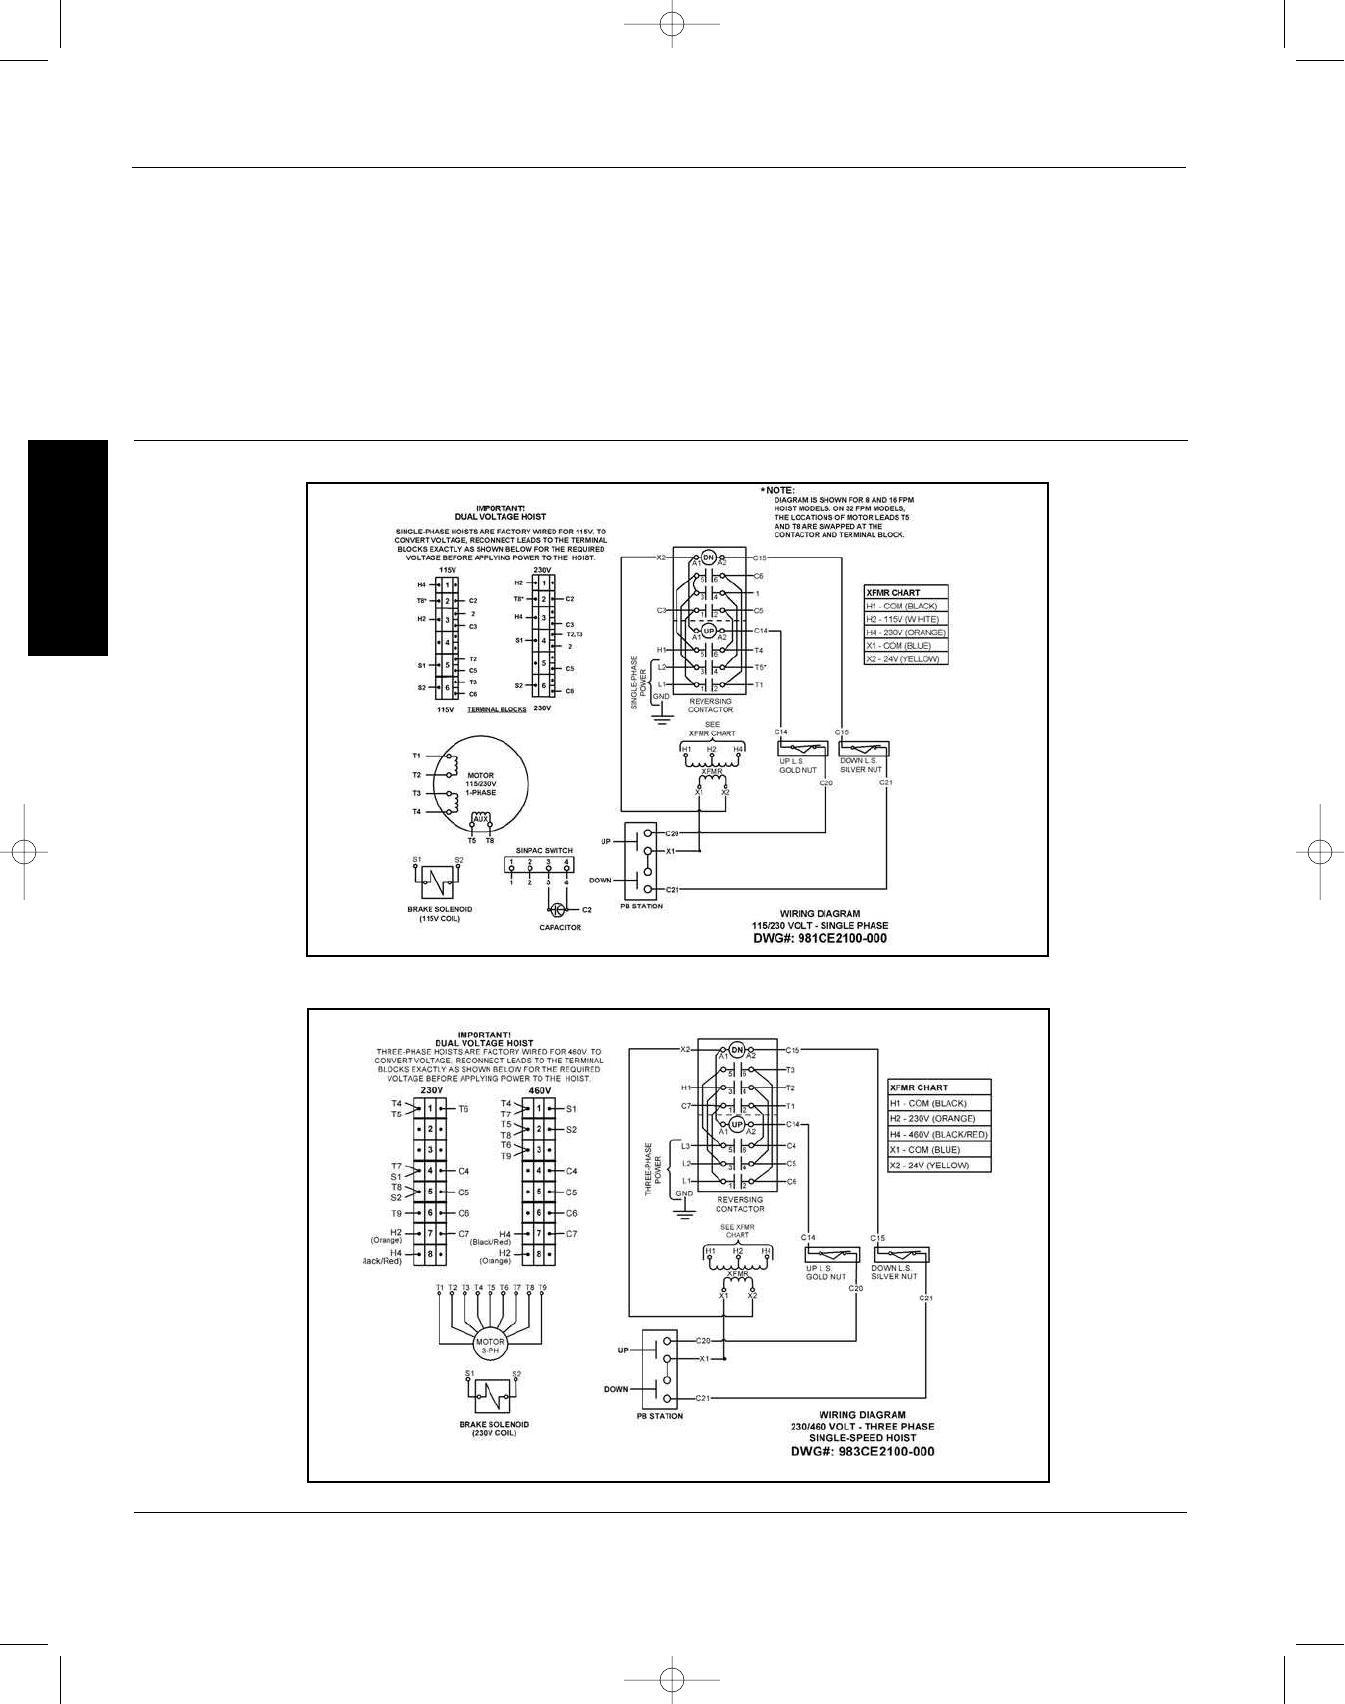 dayton electric hoist wiring diagram - wiring diagram john deere wiring diagrams wiring diagrams